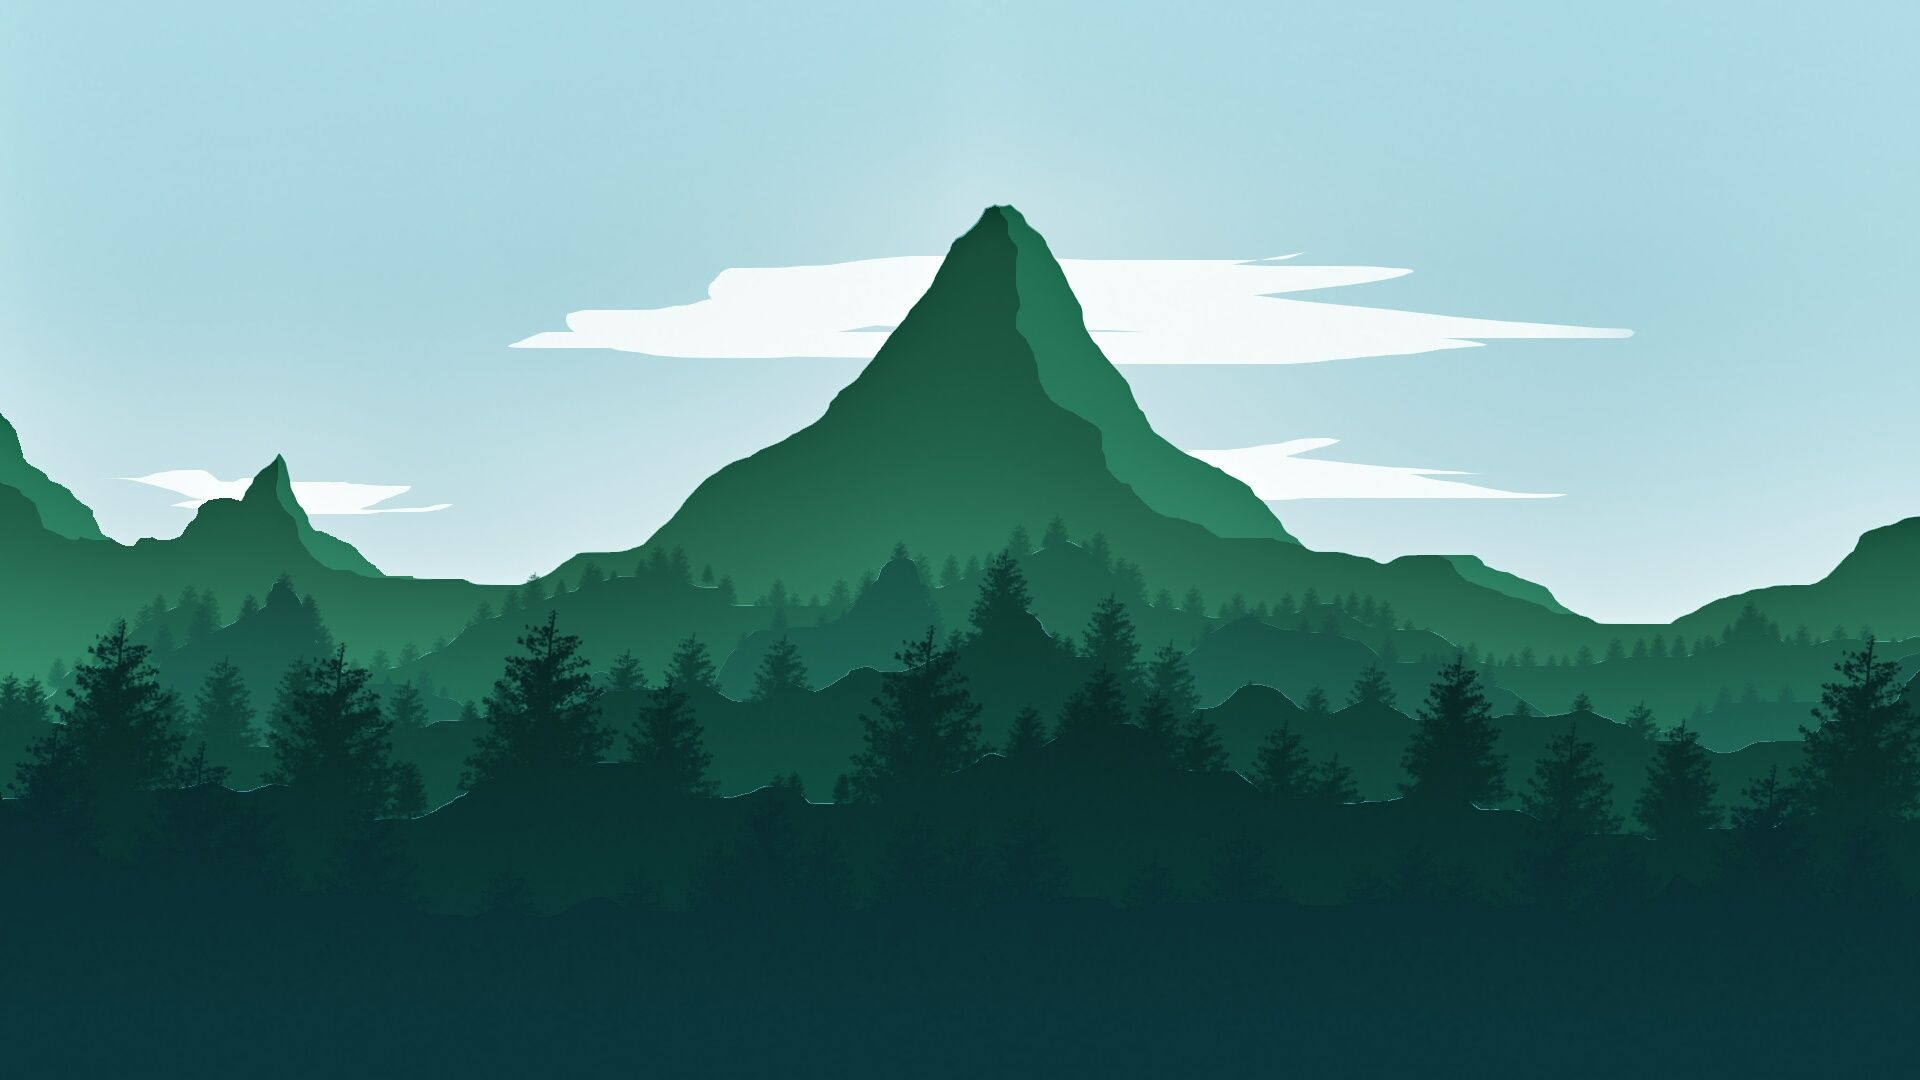 Firewatch like wallpapers; link in comments. Wallpaper